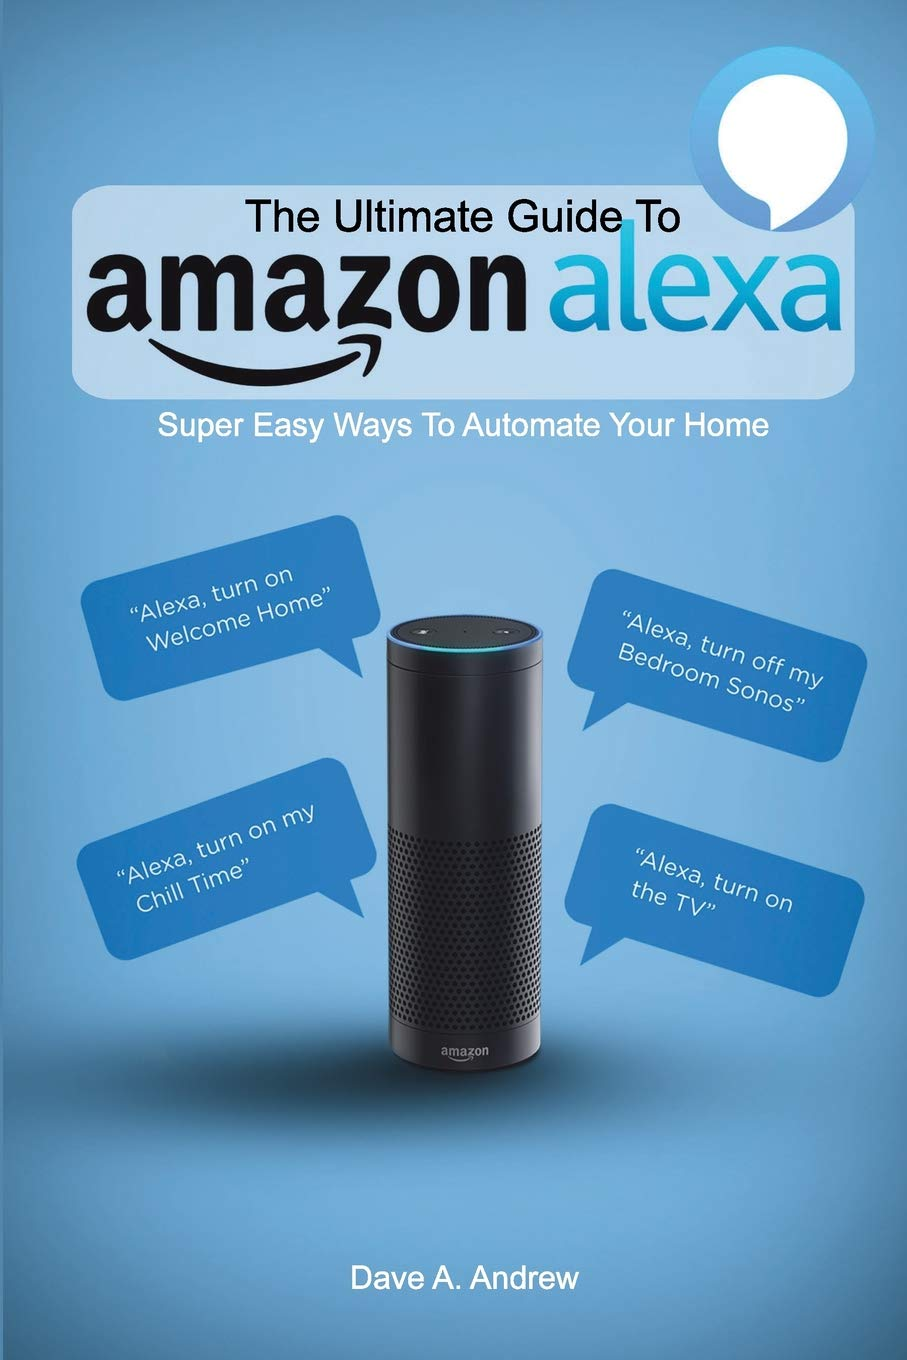 The Ultimate Guide To Amazon Alexa: Super Easy Ways To